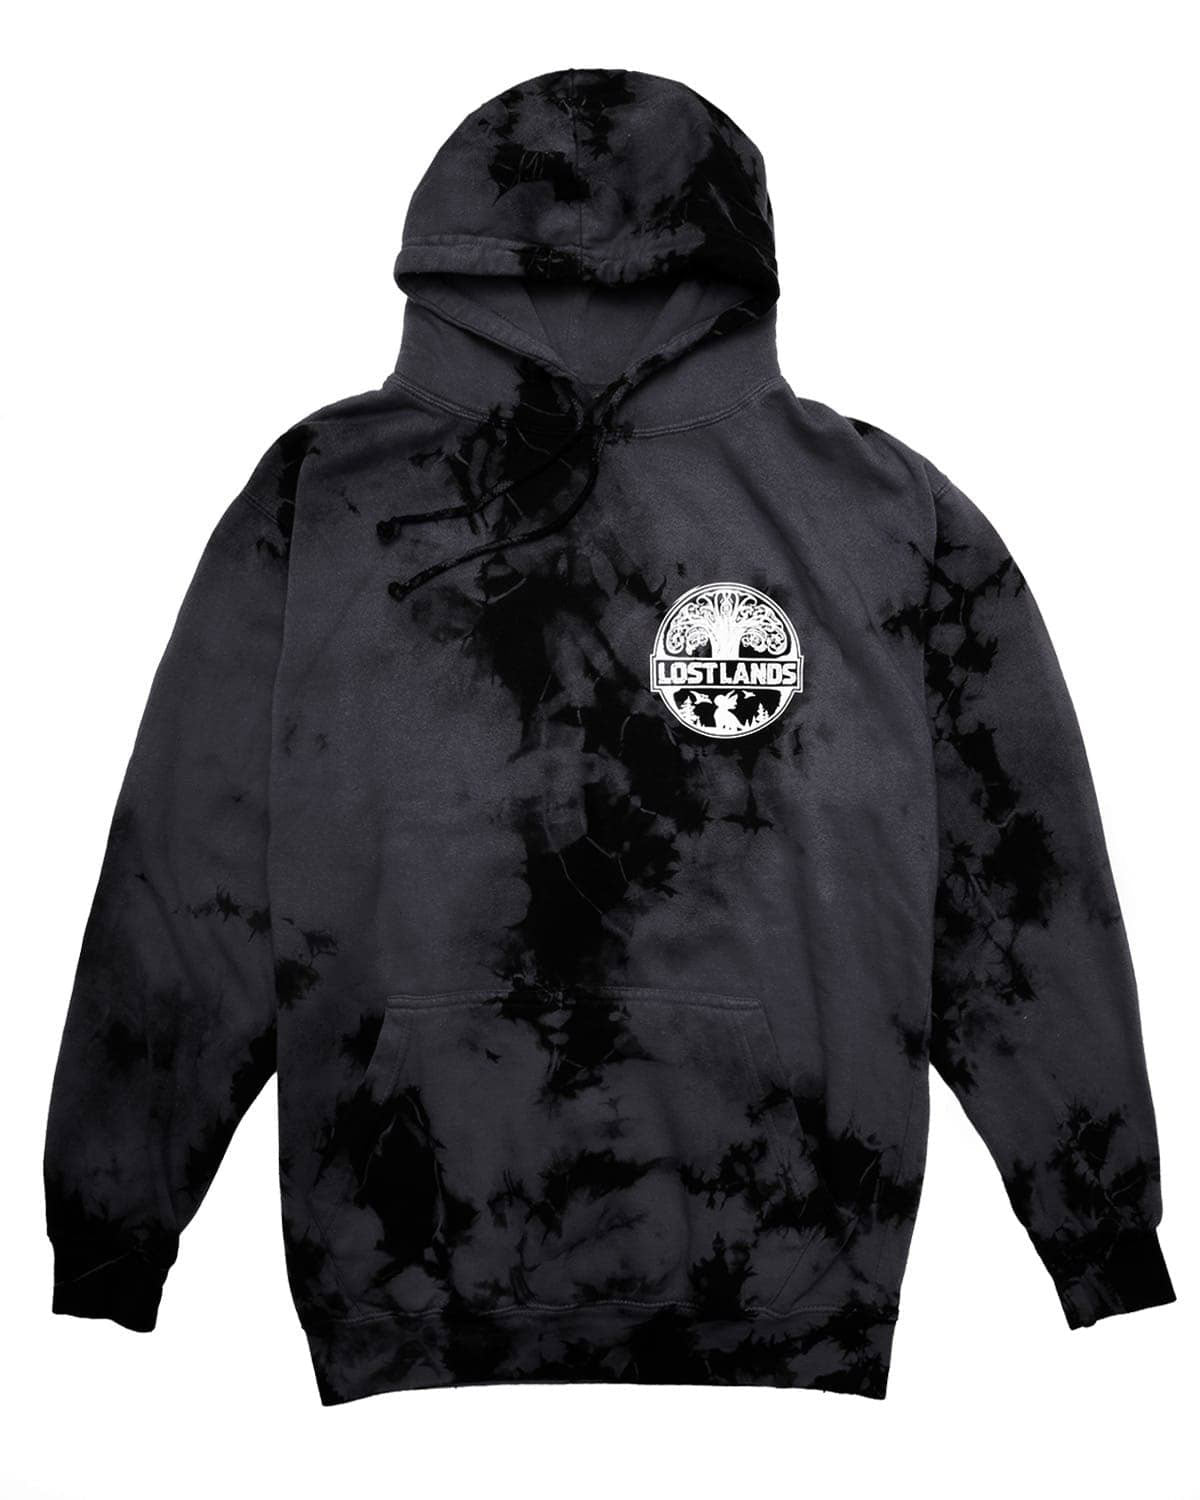 Official Lost Lands Tie Dye Pull Over Hoodie - GreyBlack